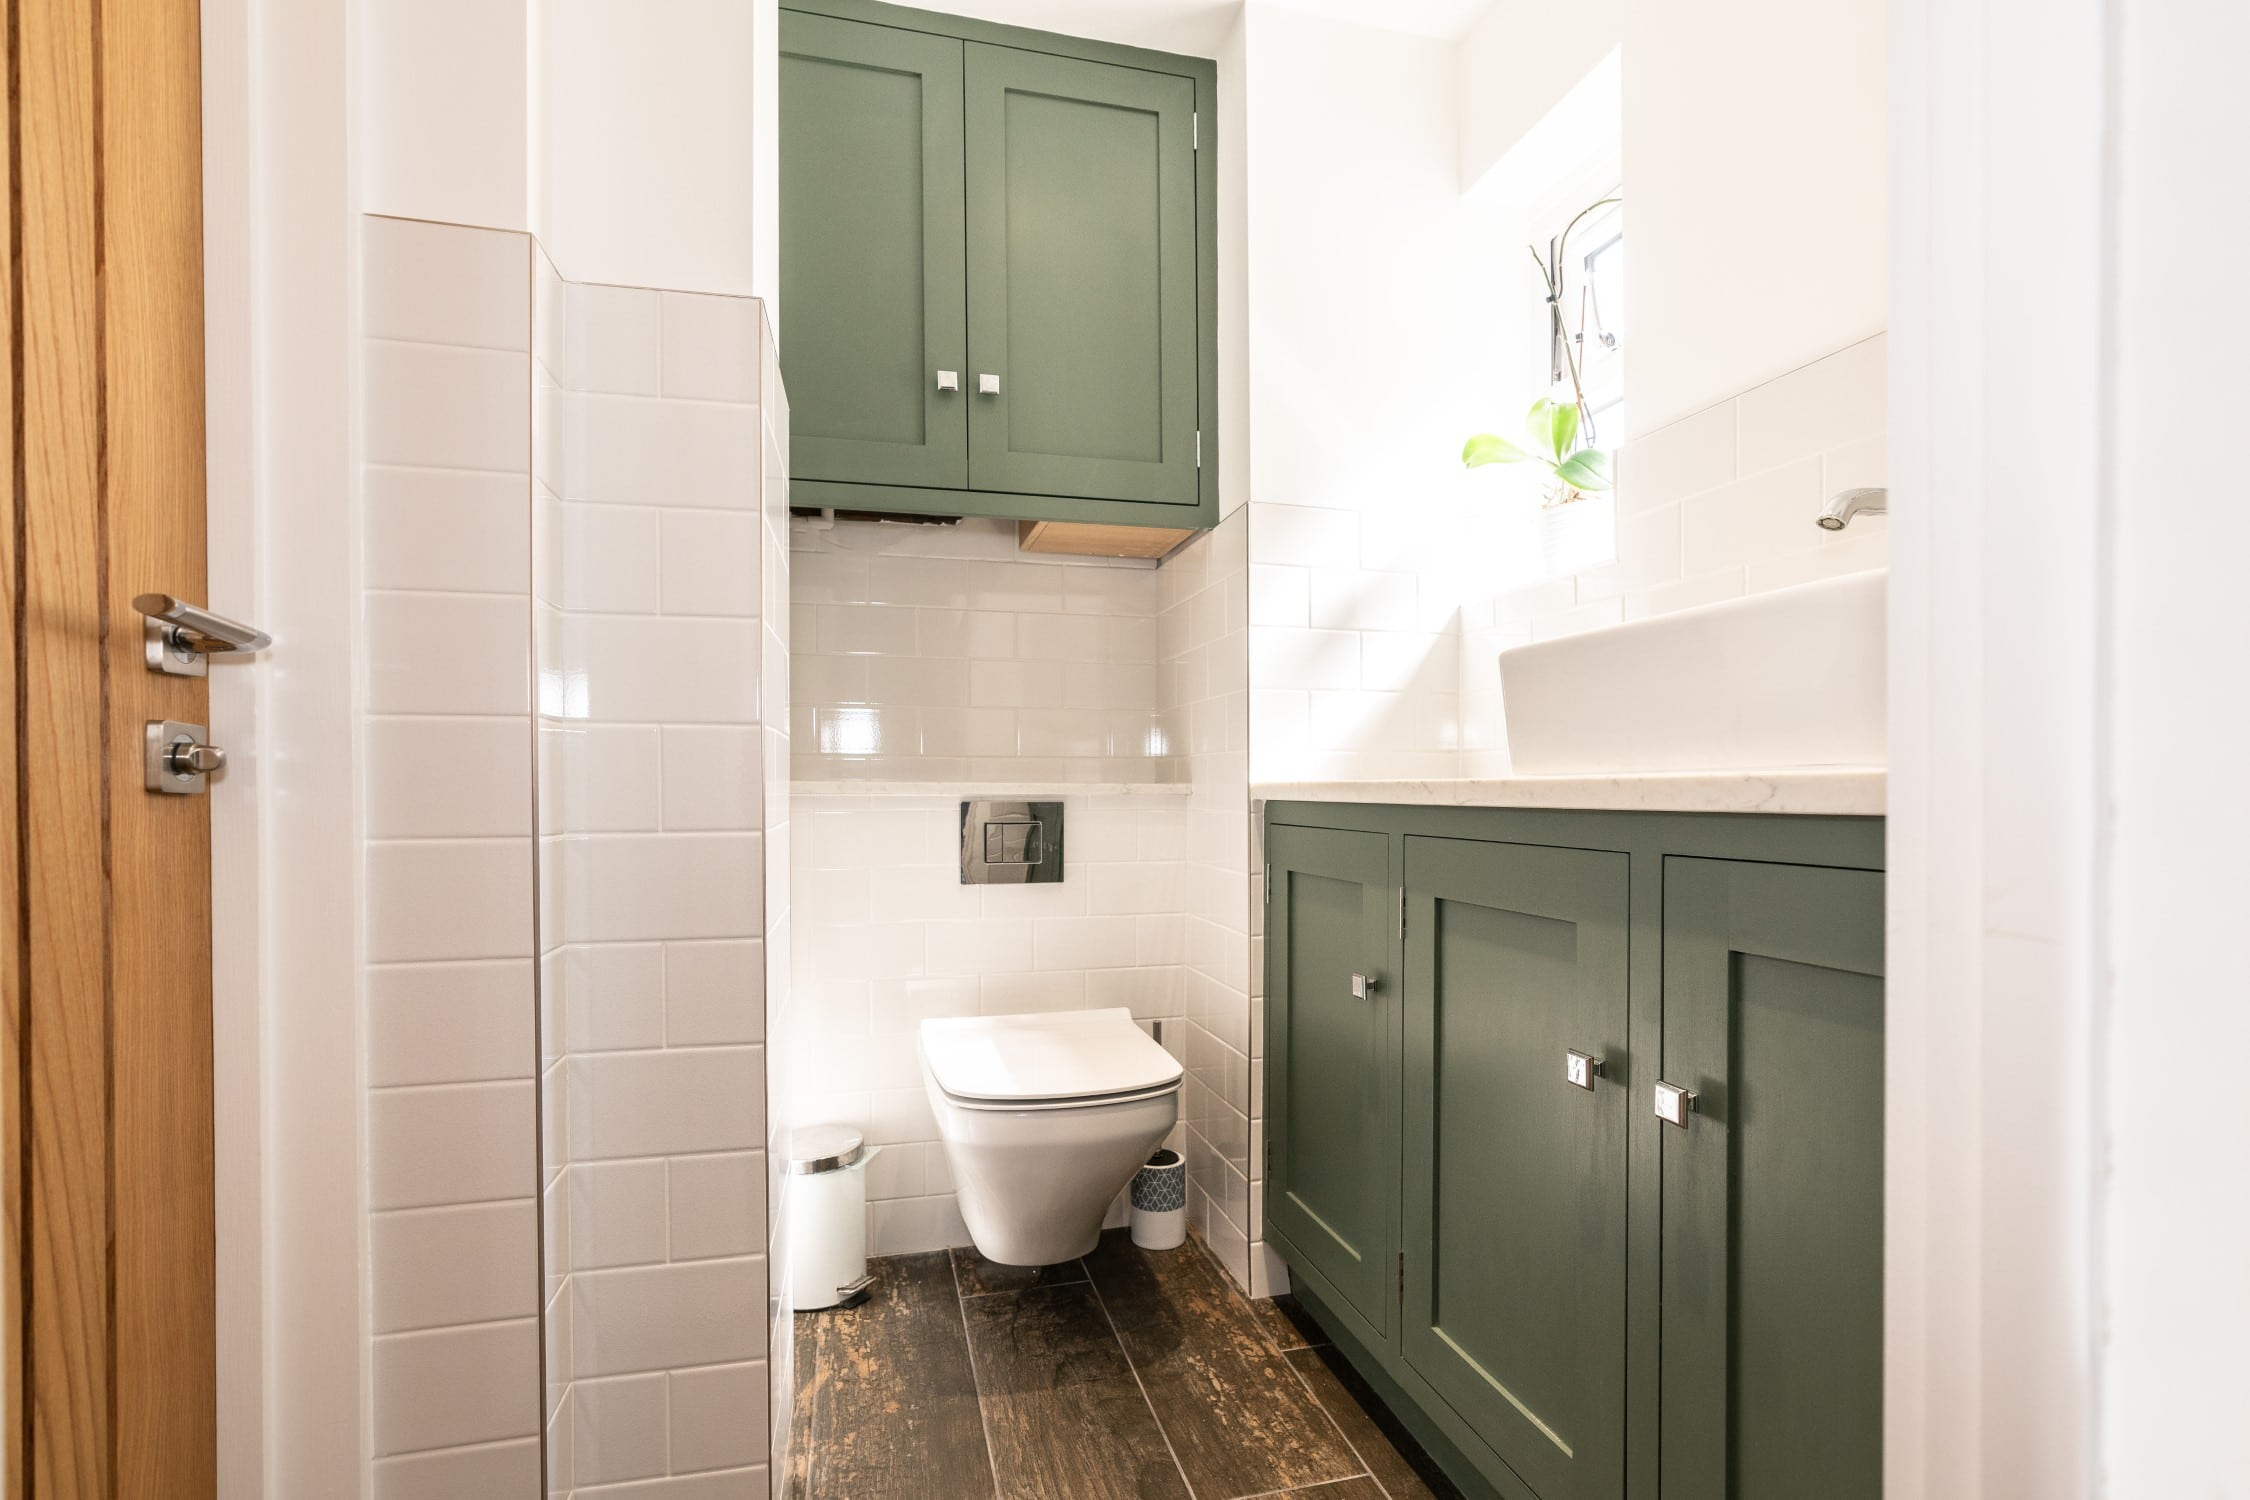 Introducing A Green Hue In The Bathroom Kitchen From Farrow Ball Nicholas Bridger